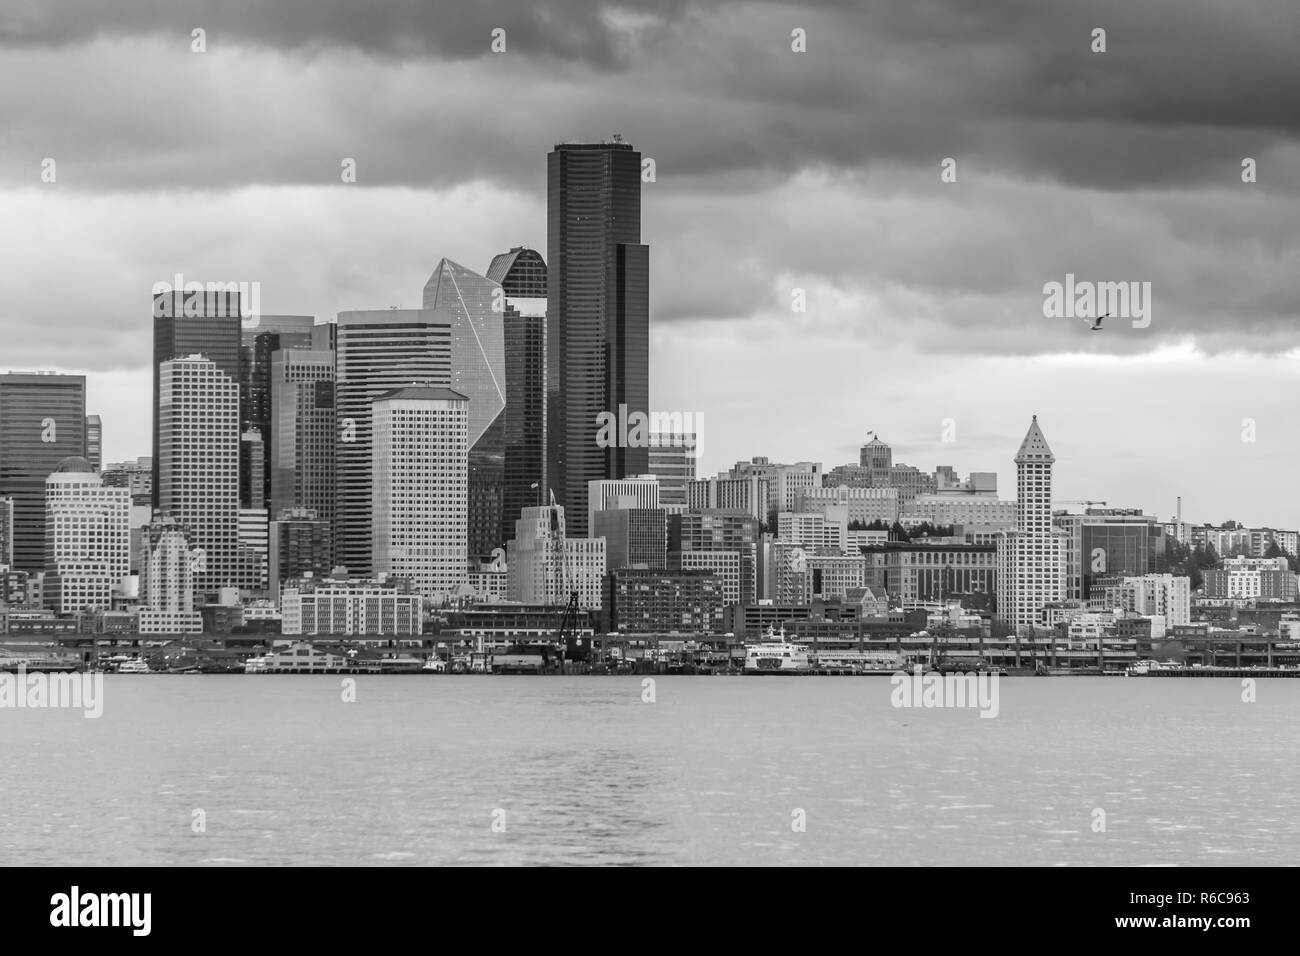 A view of the Seattle skyline as night approaches. Black and white image. - Stock Image